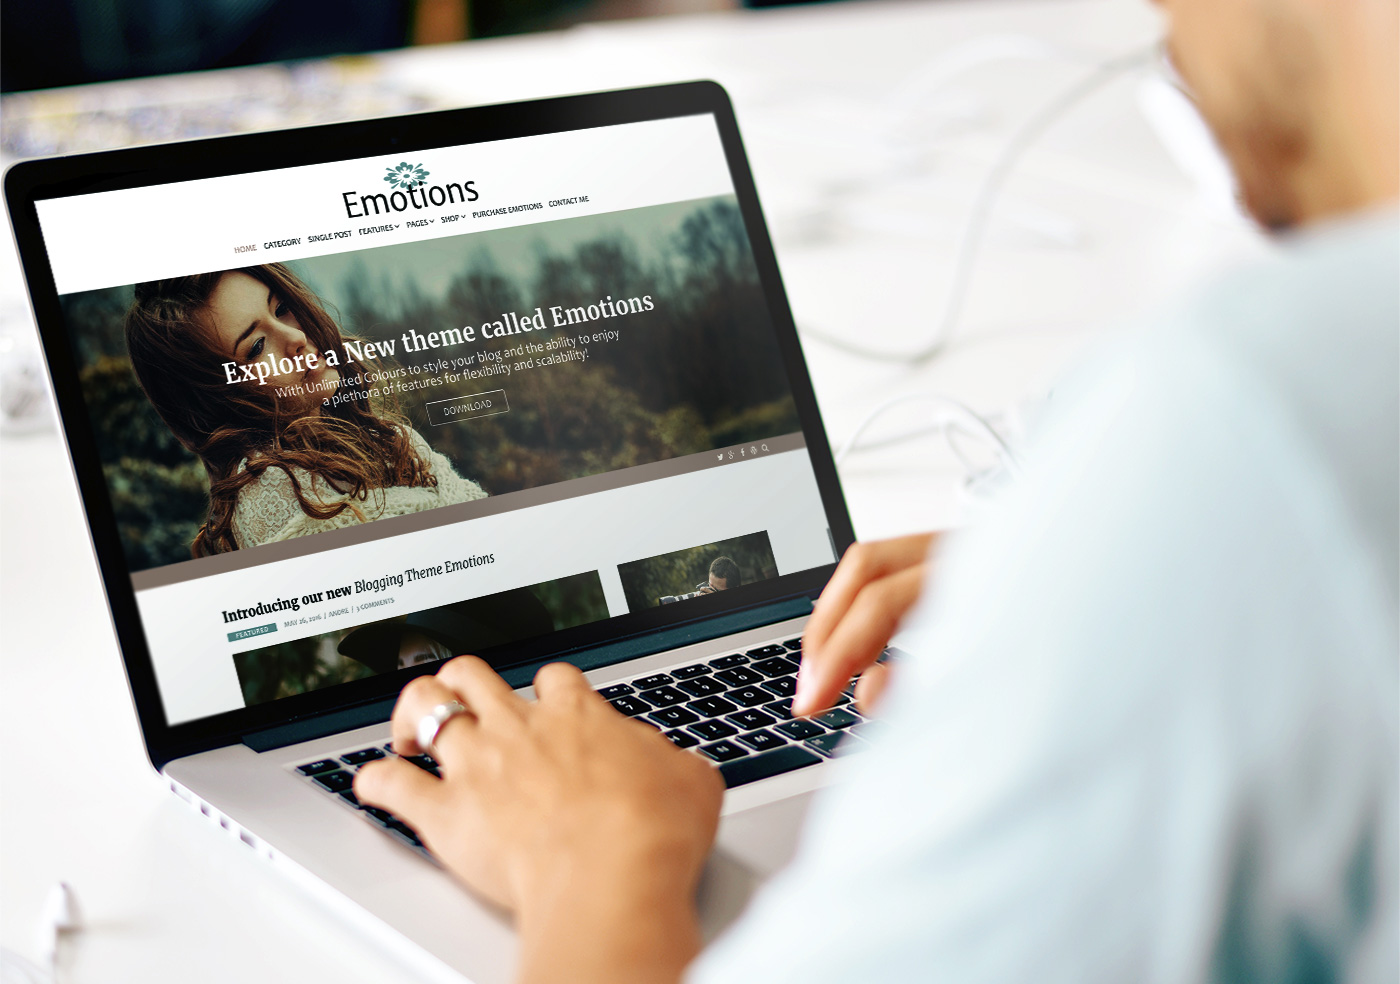 Emotions - A theme quality theme for blogging or business